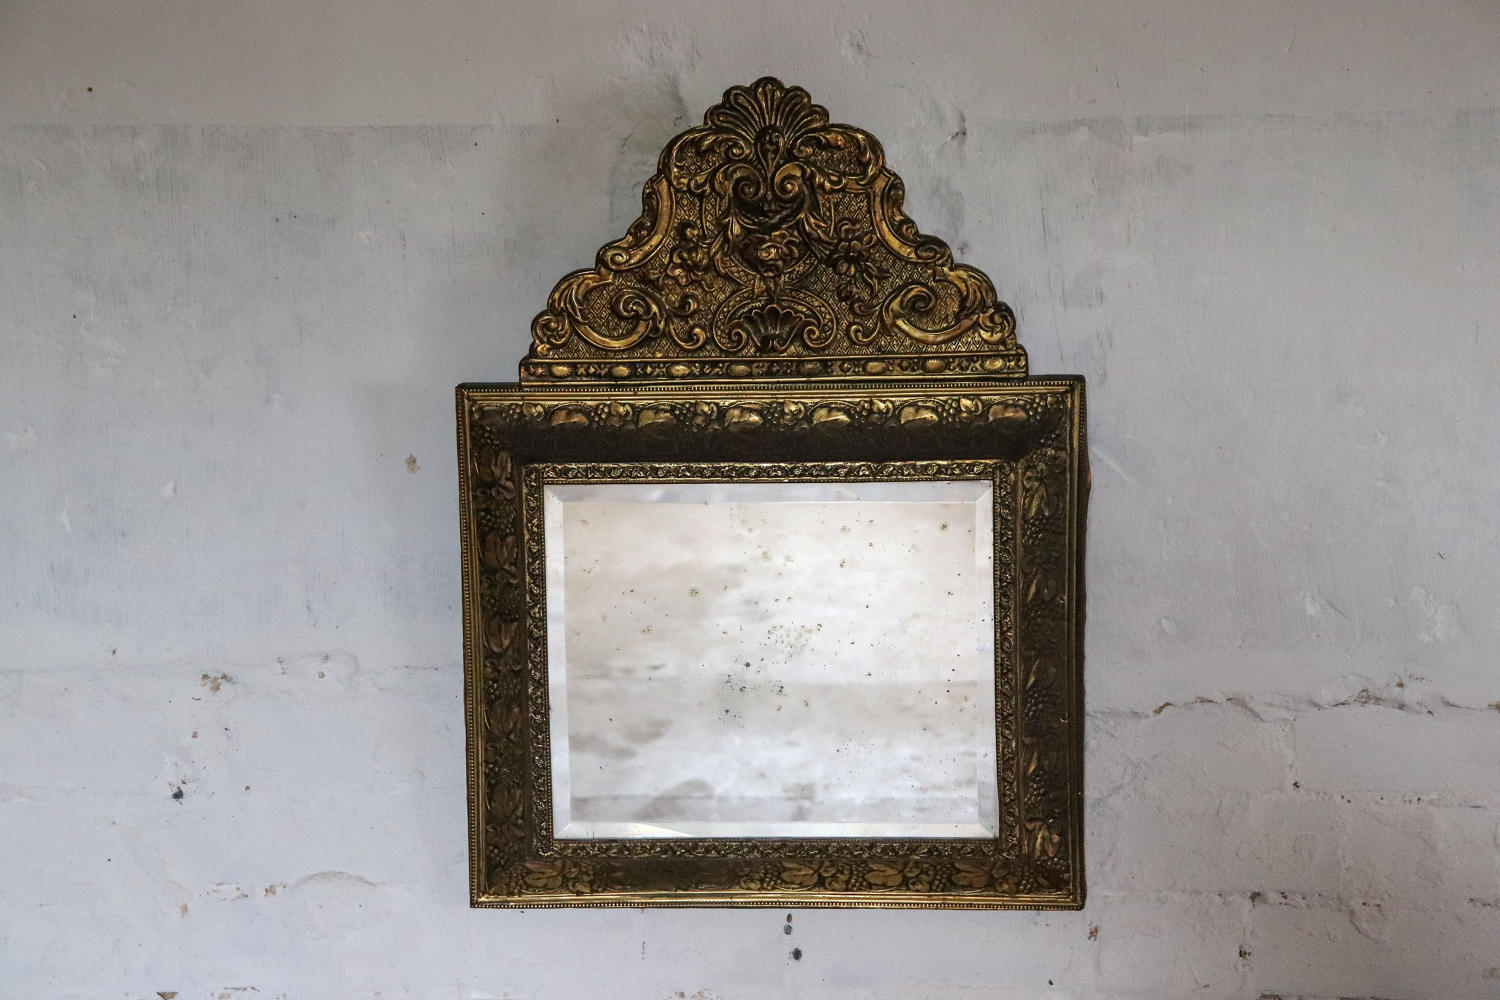 19th century French repoussé mirror